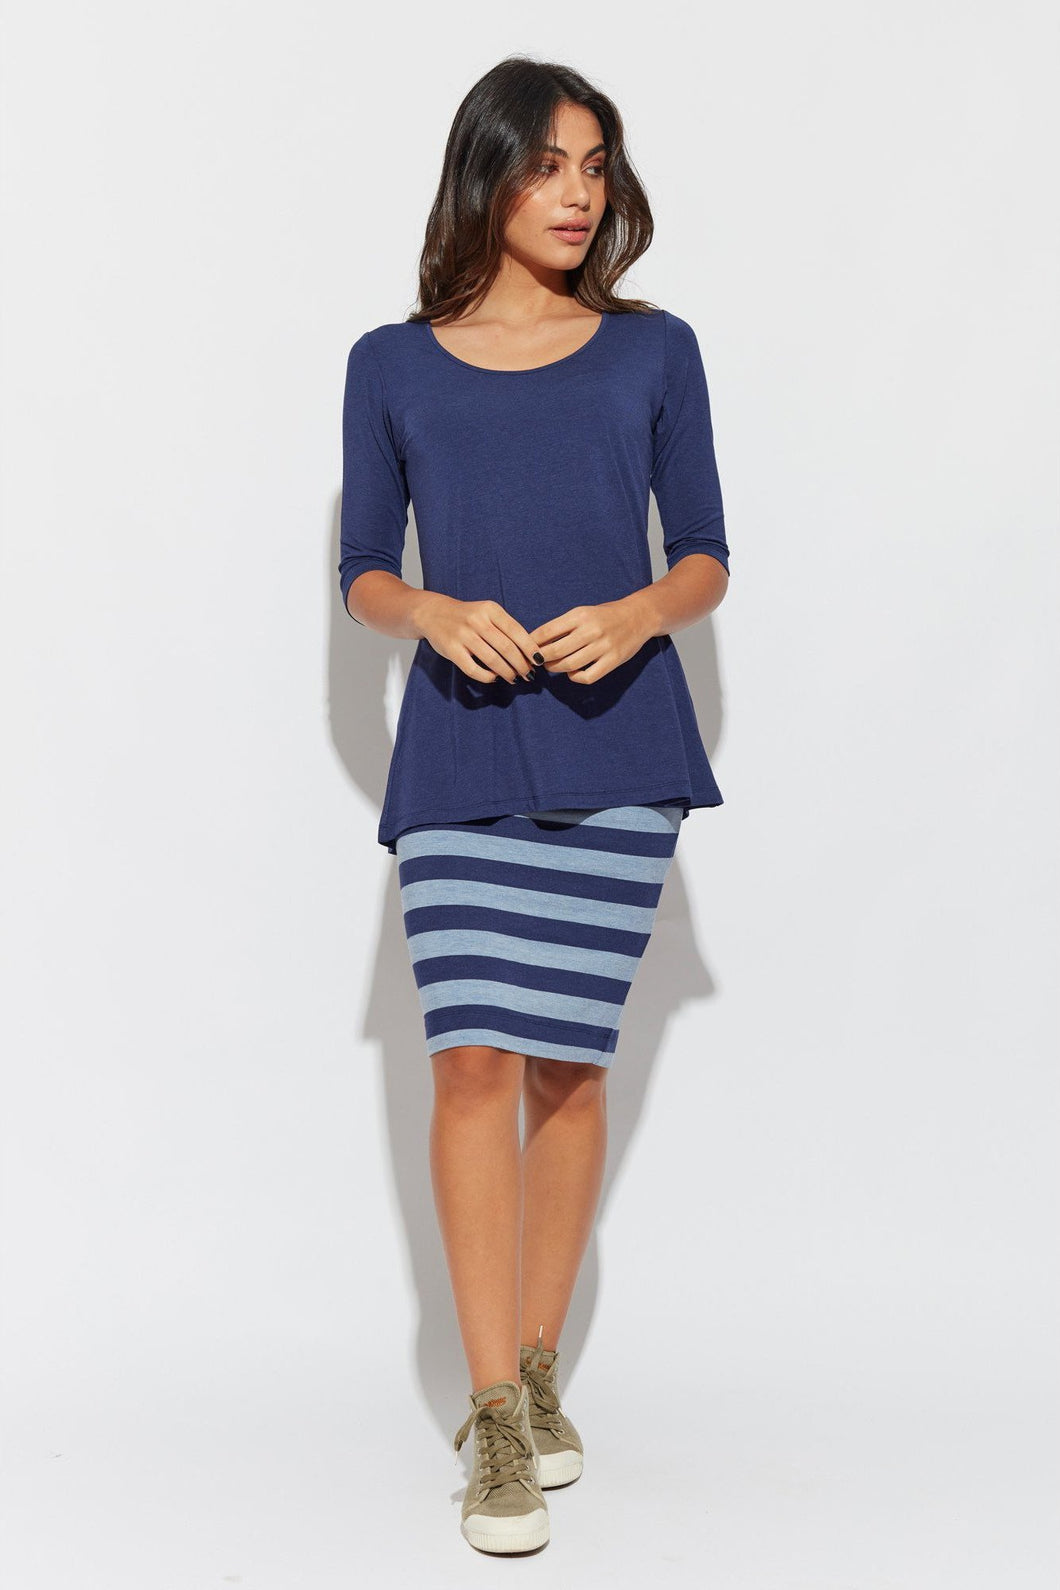 Midi Whitney Tube Skirt - Indigo/Denim Stripe